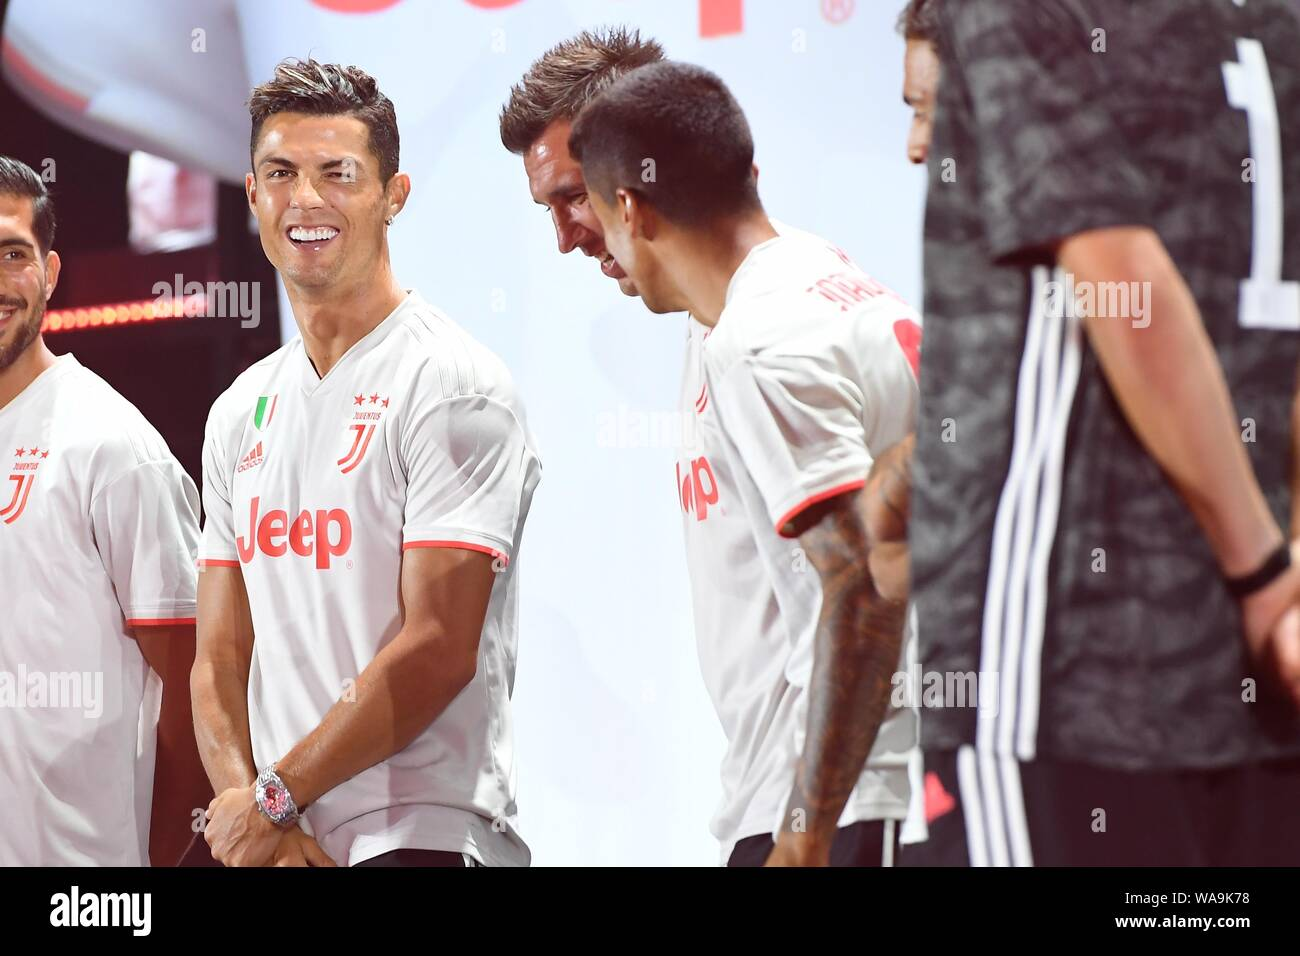 huge selection of 8a87d 621bc Portuguese football player Cristiano Ronaldo of Juventus ...